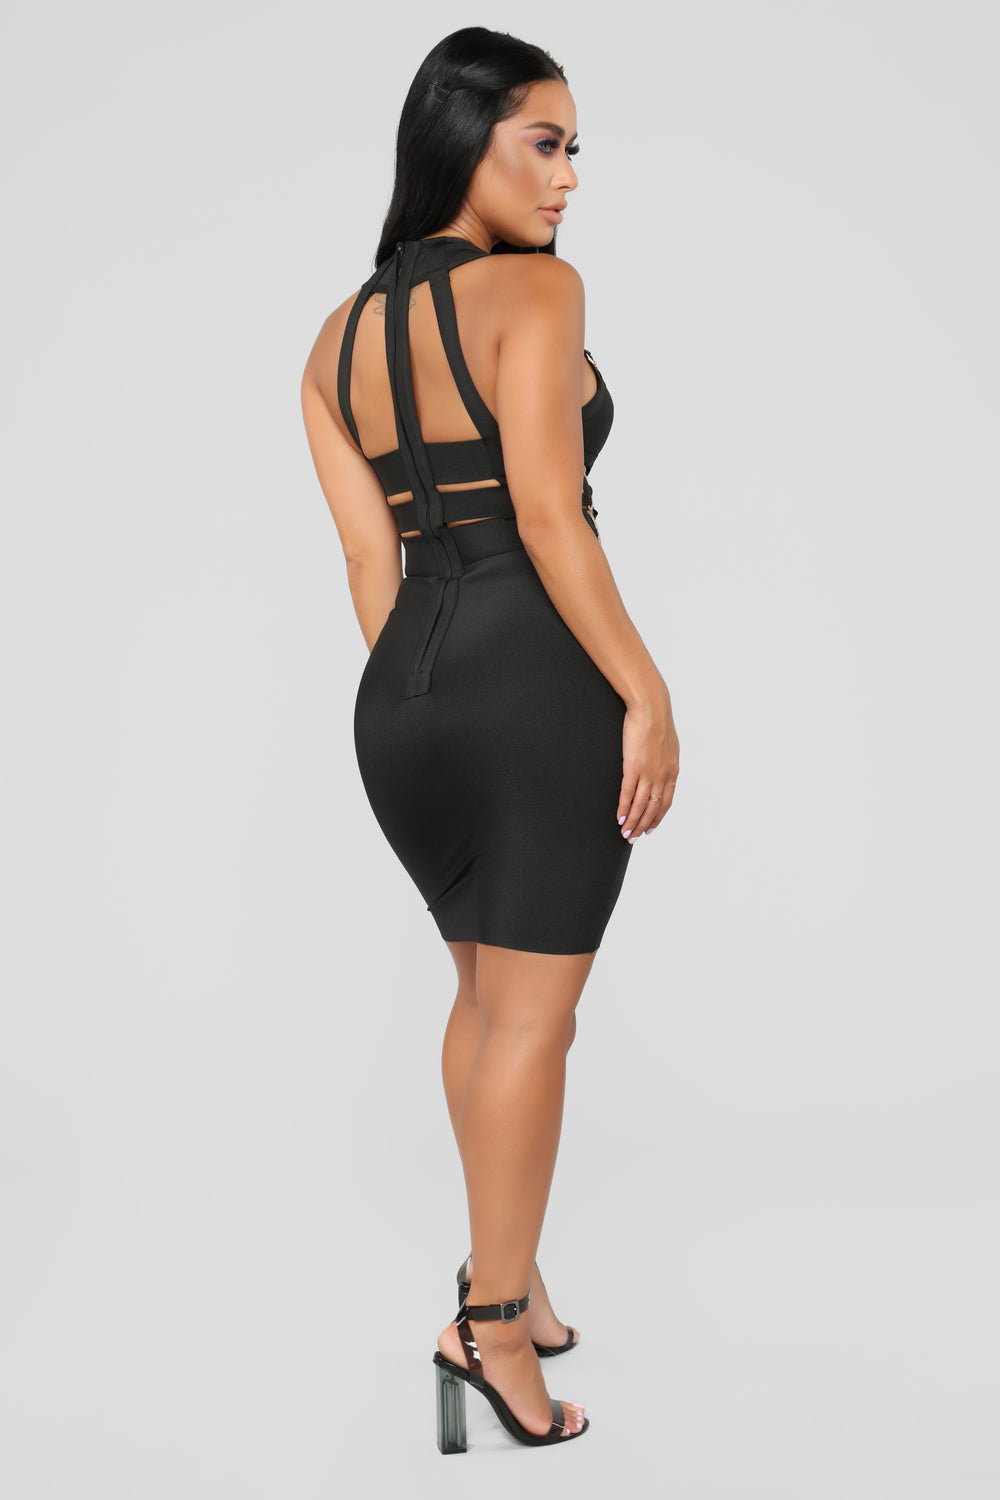 Kimberly Bandage Dress - Black